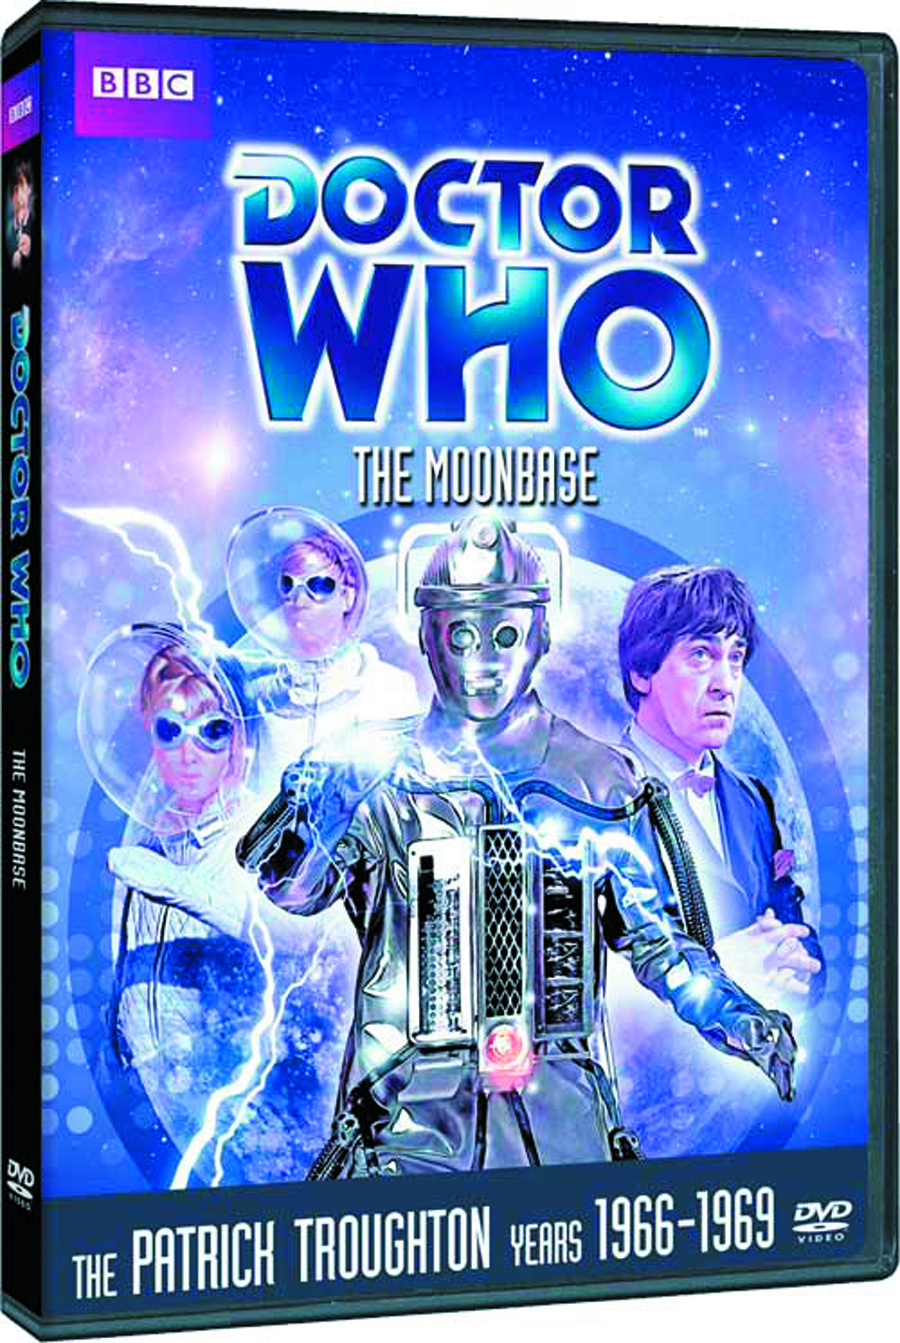 DOCTOR WHO THE MOONBASE DVD